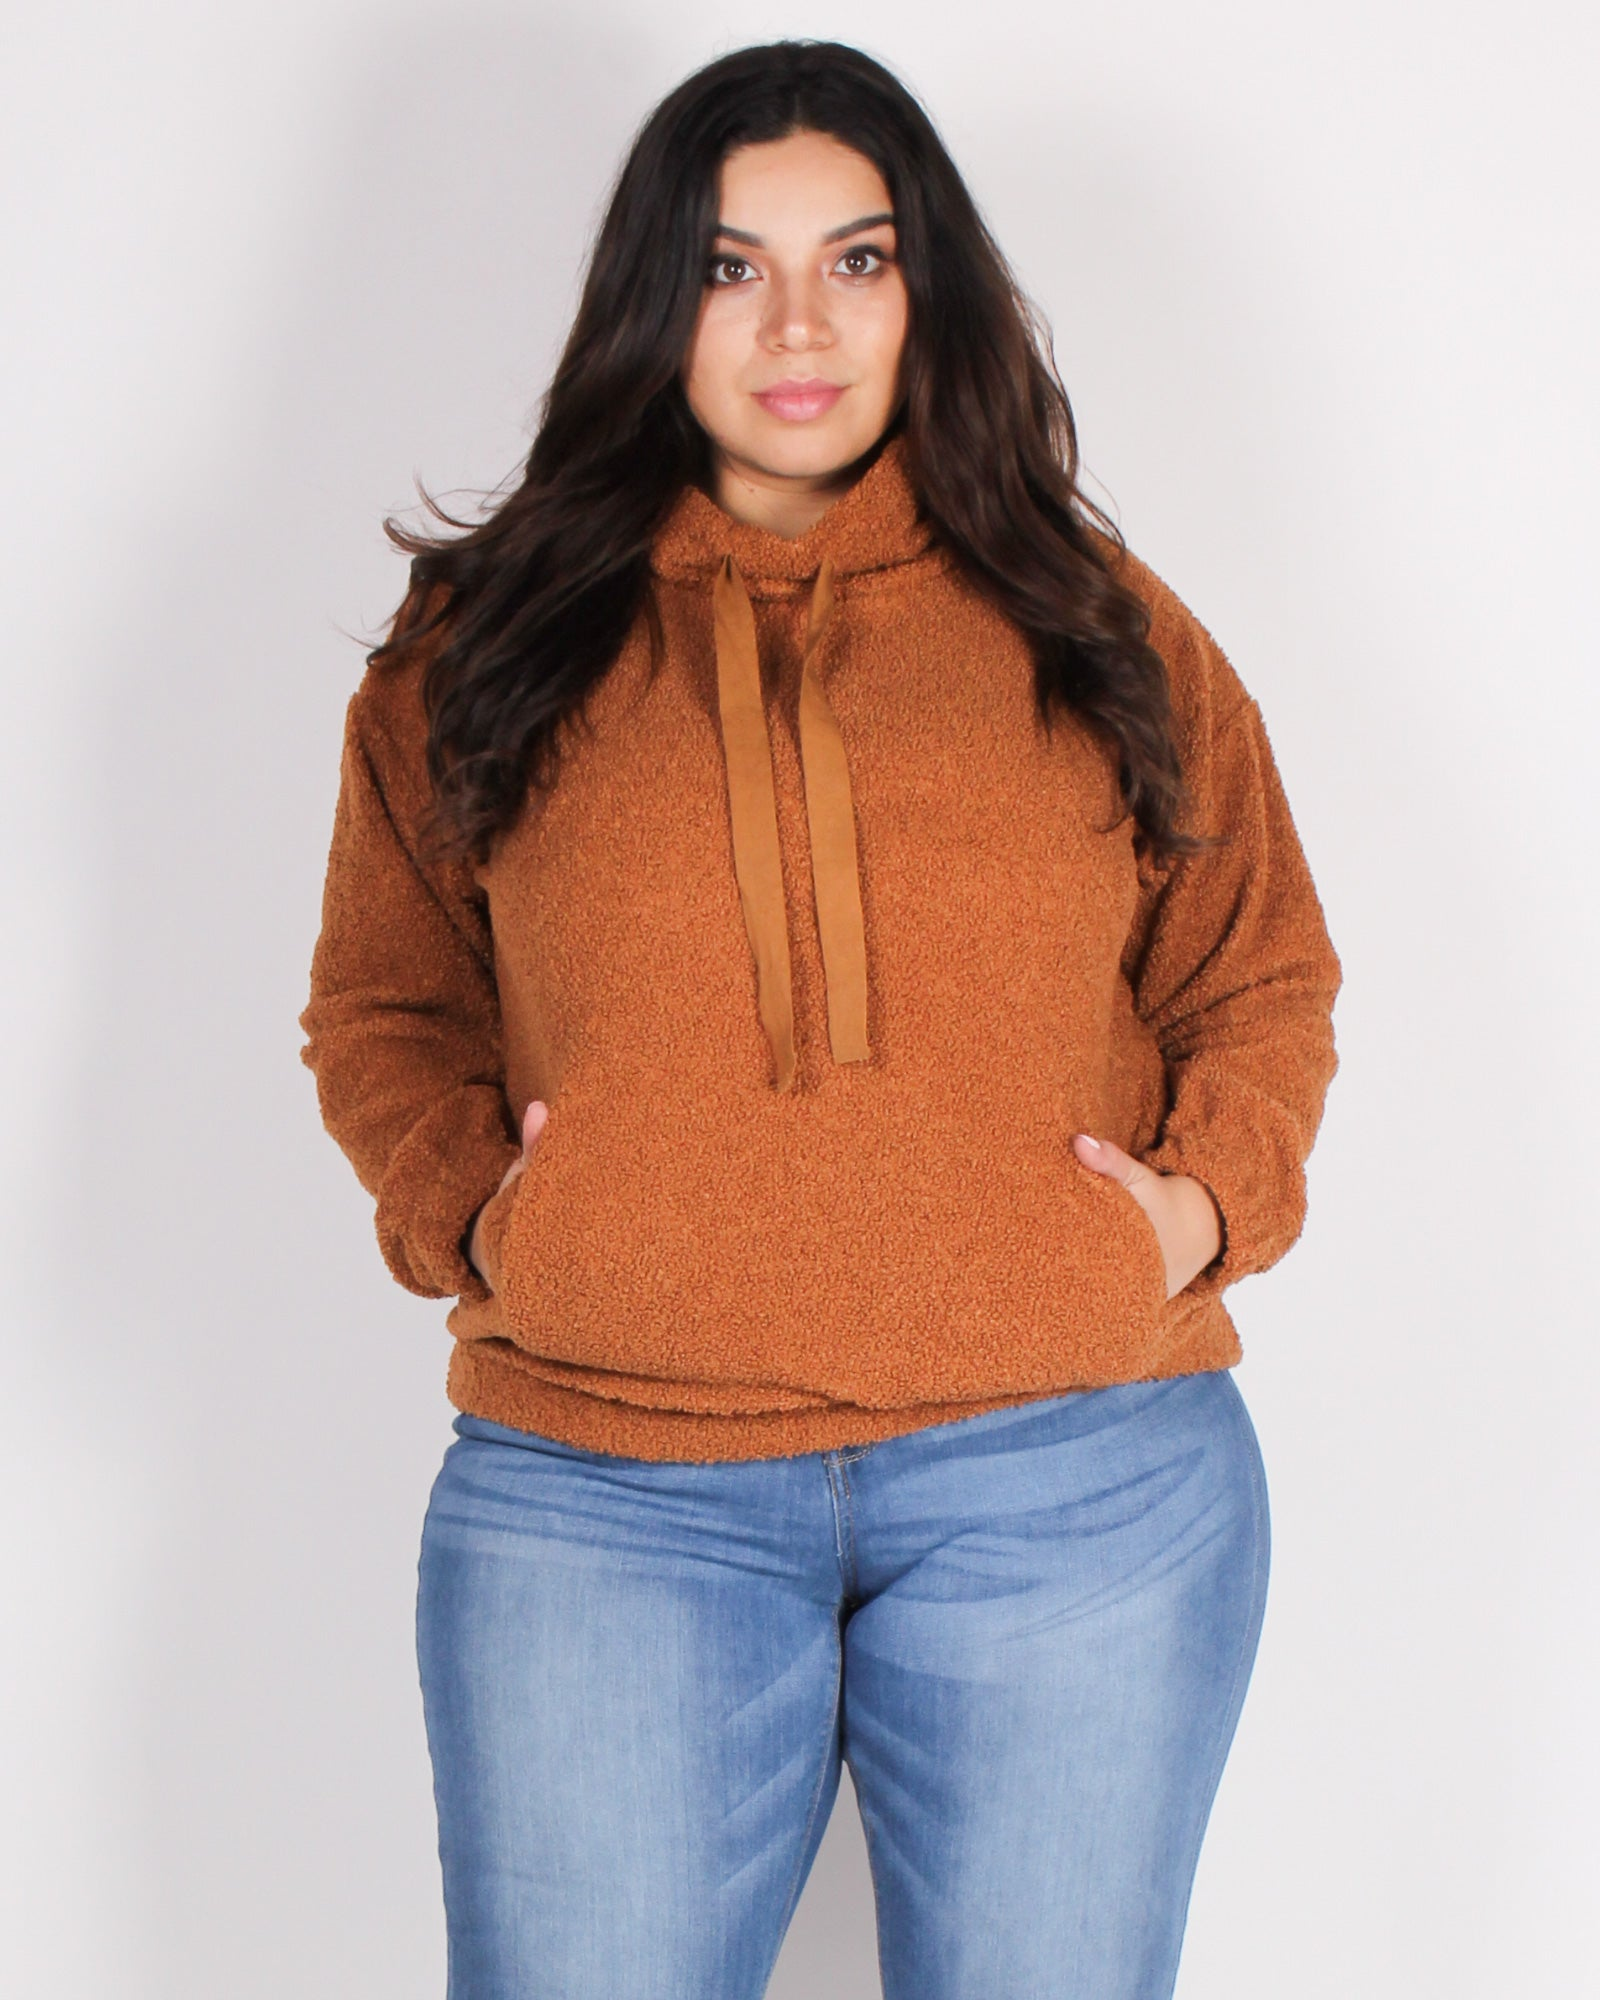 Fashion Q Shop Q An Adventure is Beginning Teddy Bear Pullover (Camel) IT4231-1